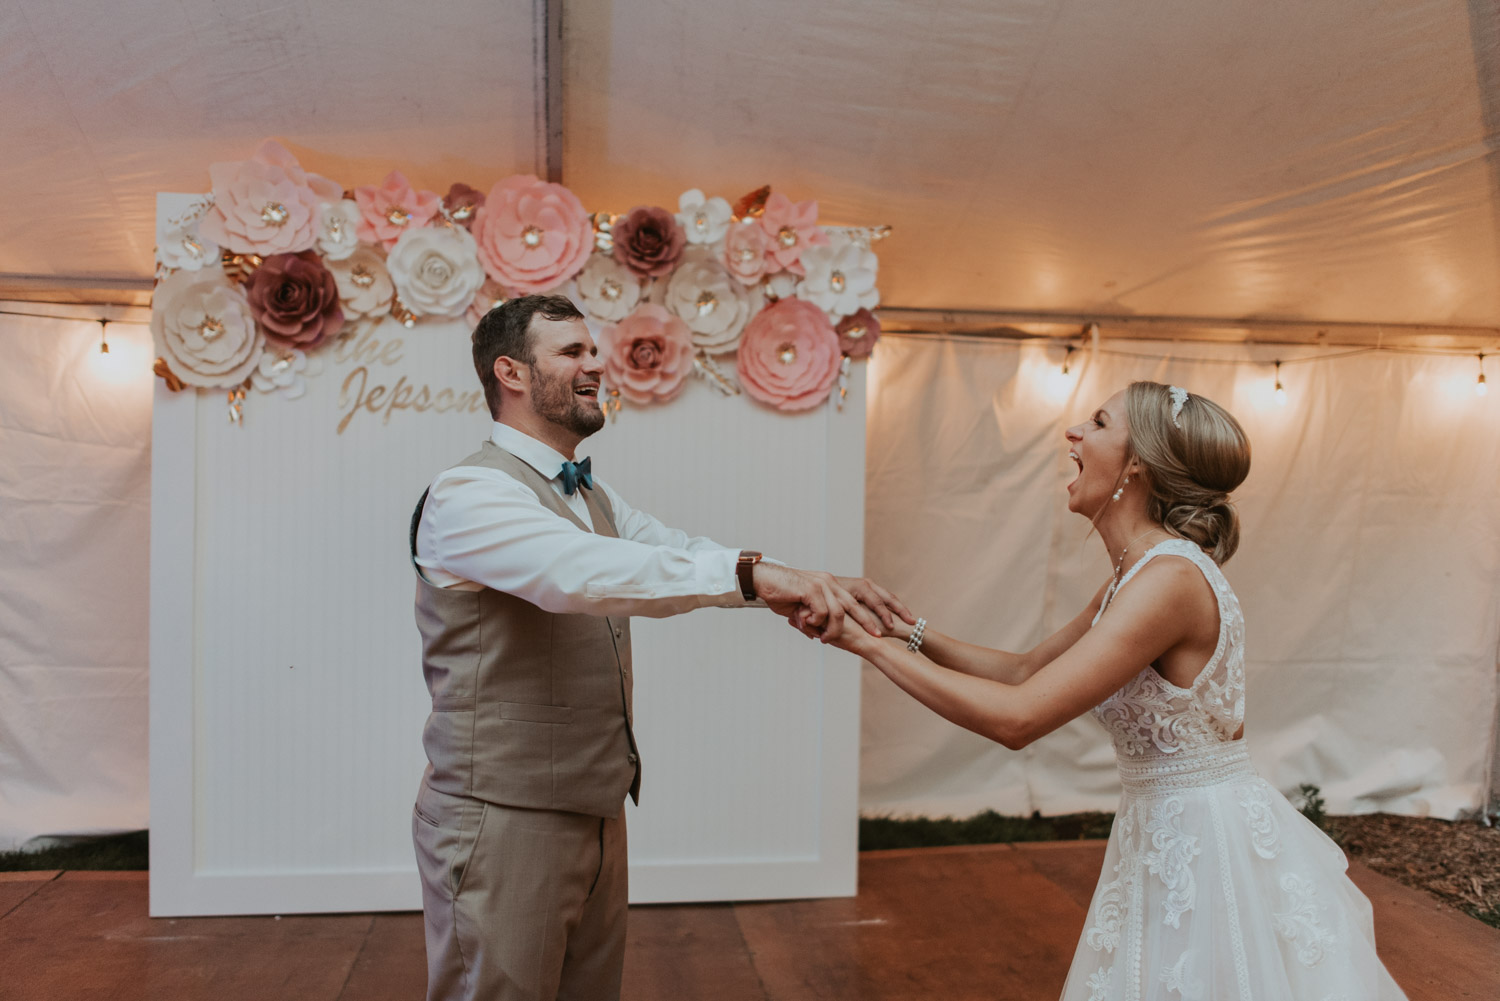 bride and groom first dance at reception at wedding in lincoln, nebraska